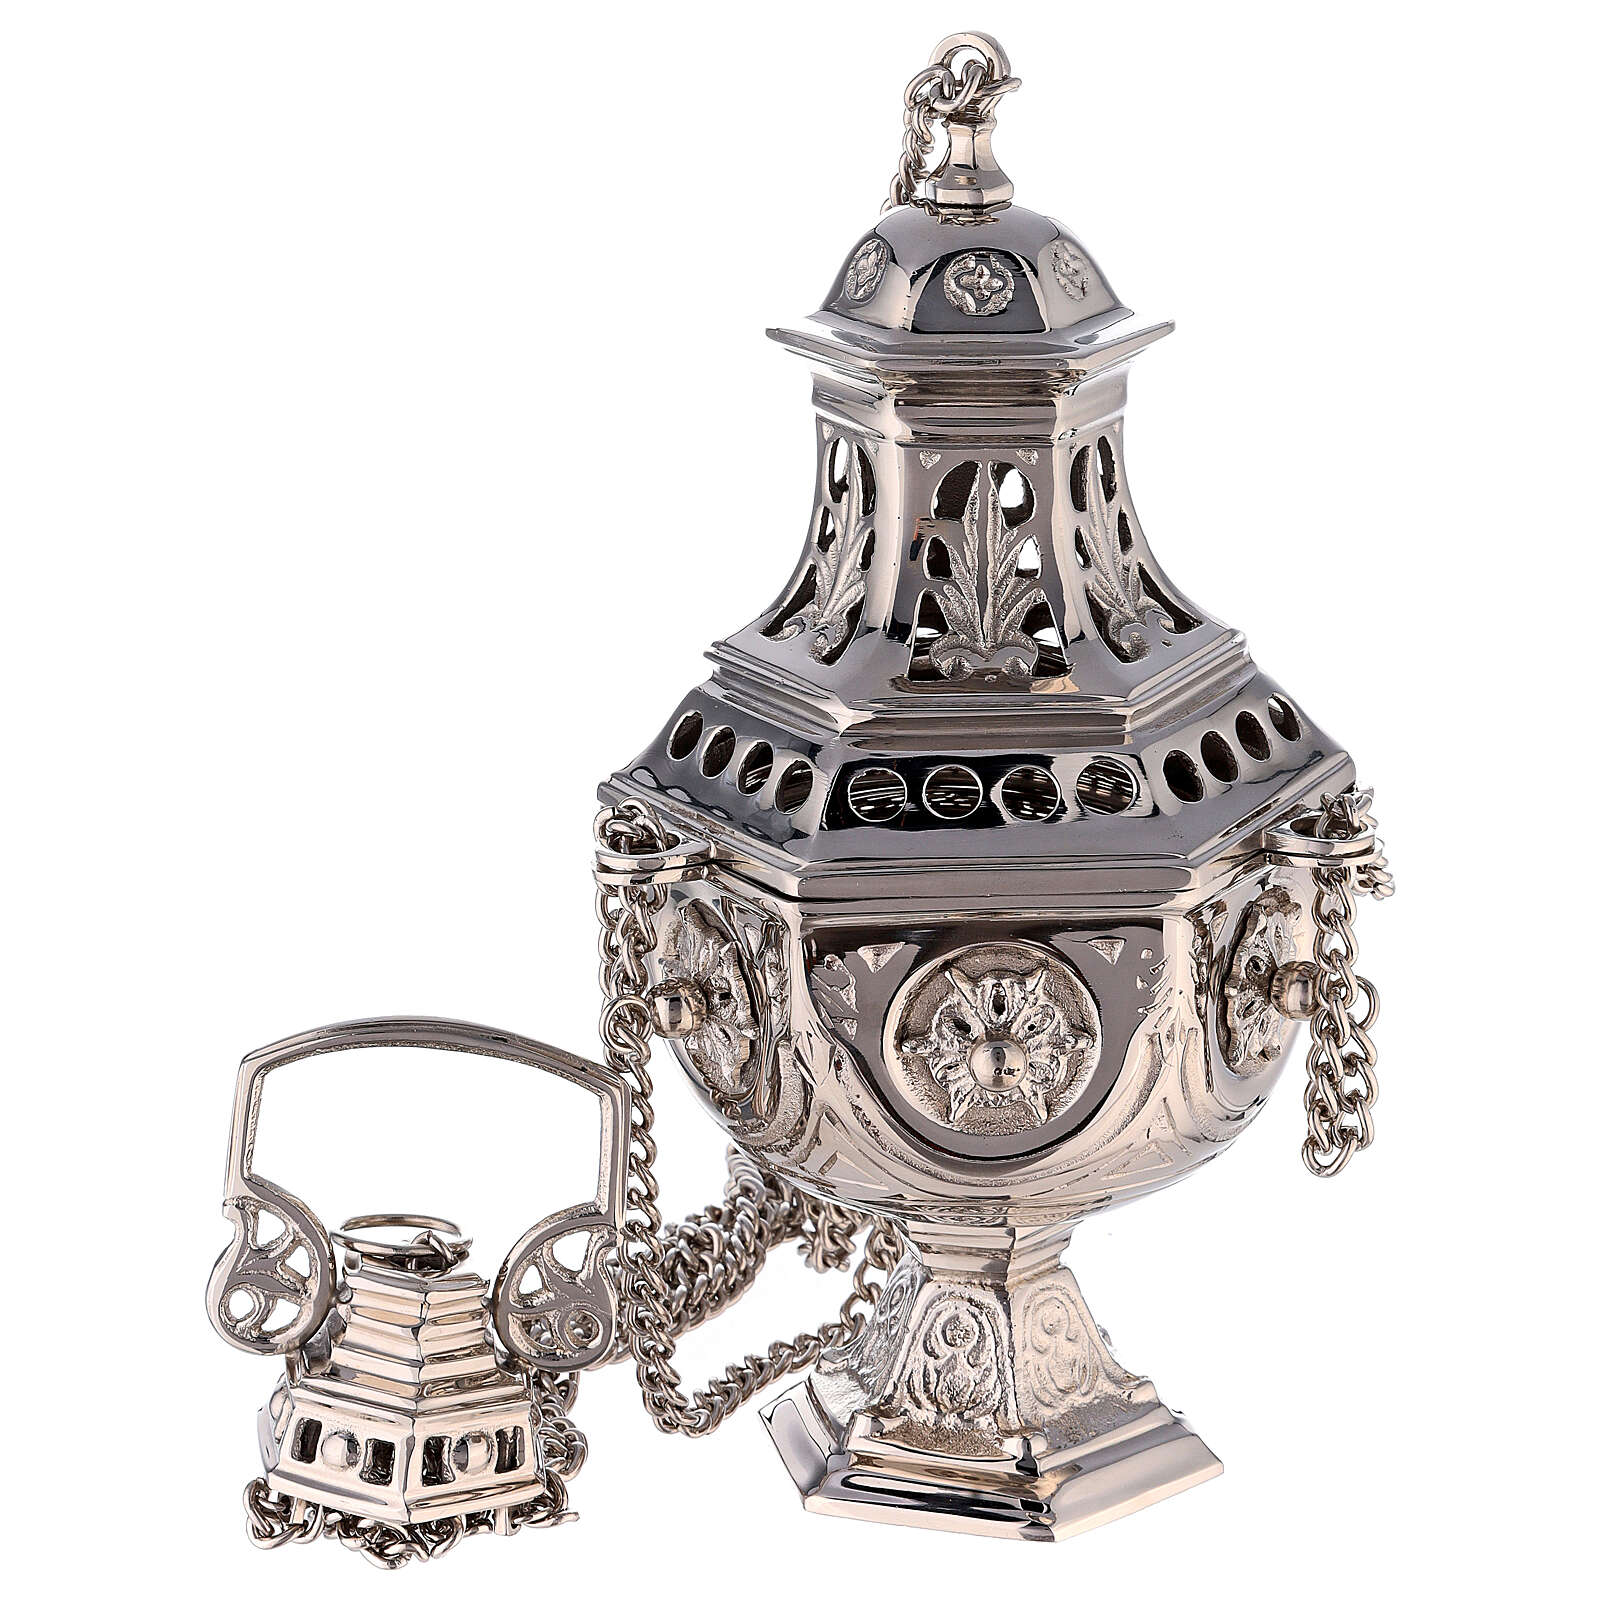 Hexagonal cut-out thurible in nickel-plated brass 10 1/2 in 3